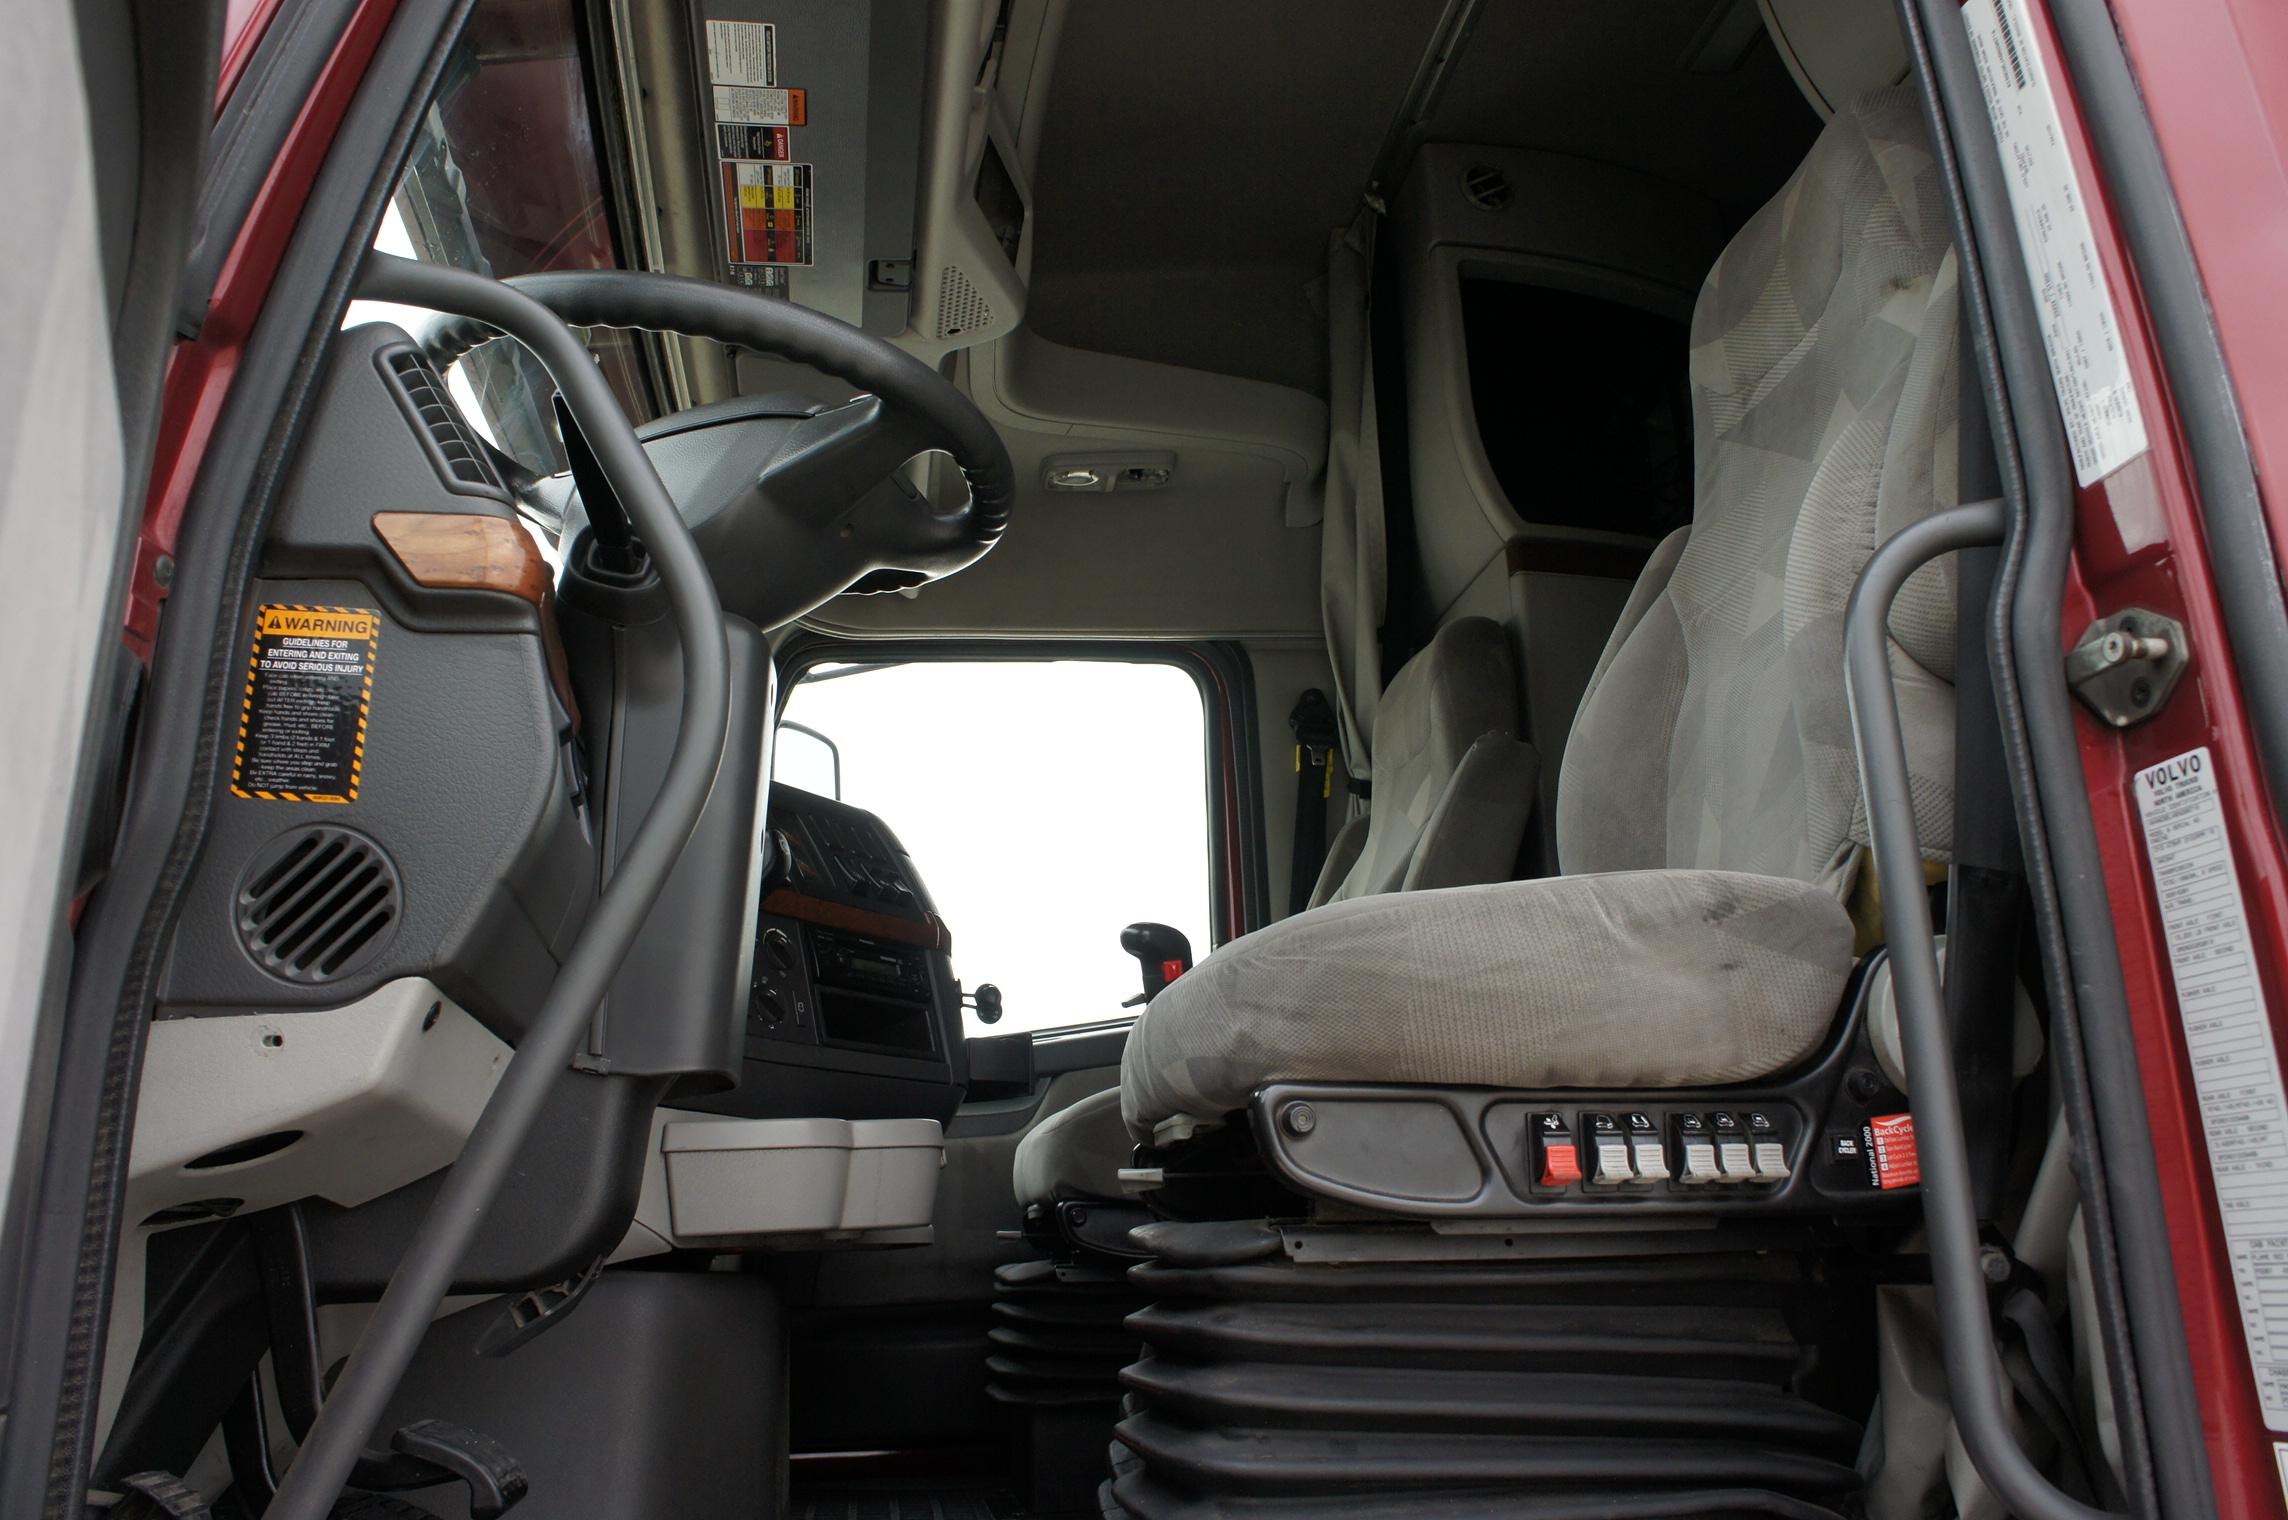 Used 2011 Volvo 730 for sale-59207236